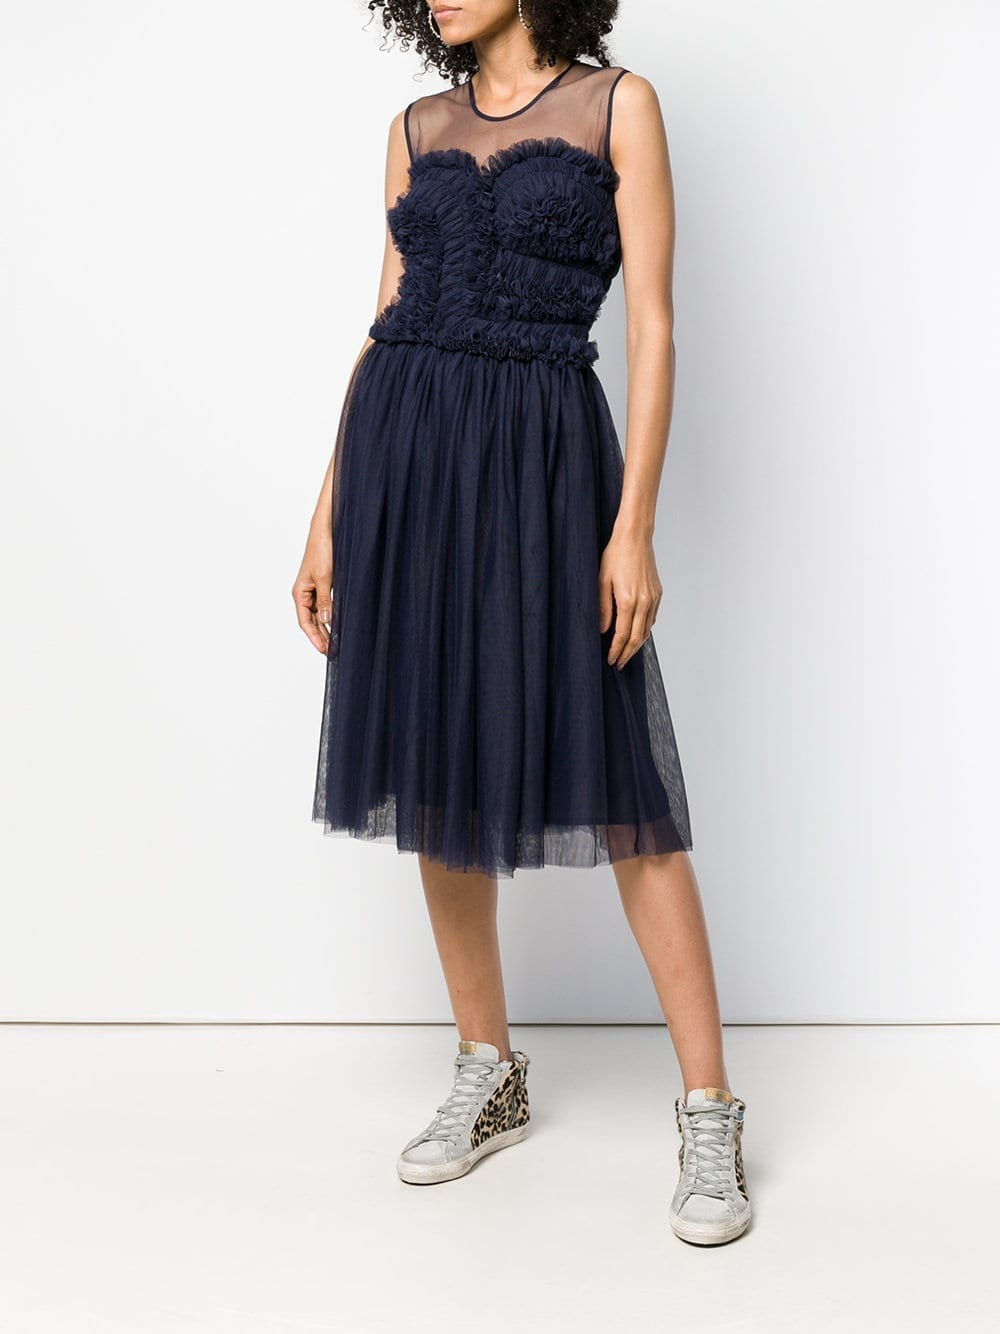 P.A.R.O.S.H. Ruffled Flared Navy Dress